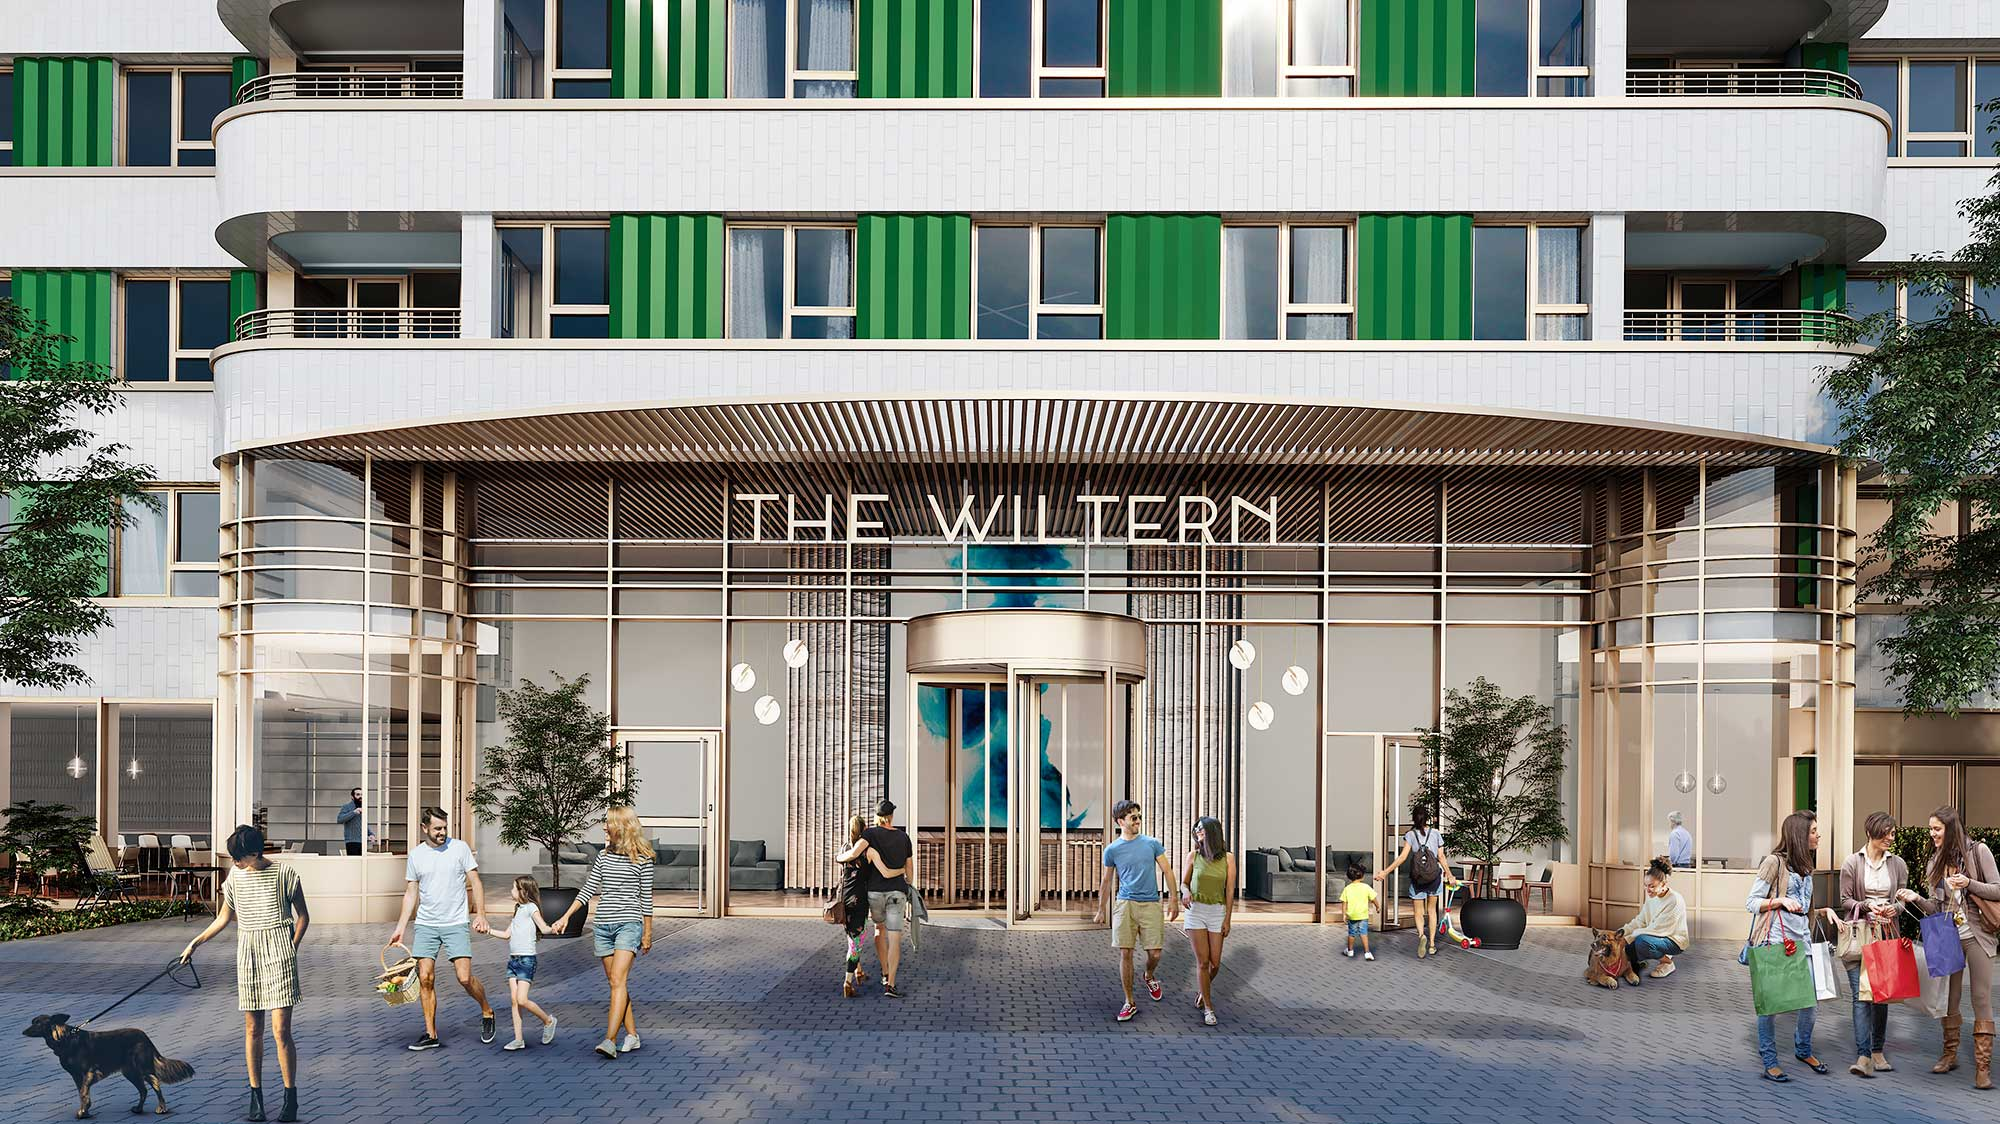 TheWiltern cgi front entrance - The Wiltern